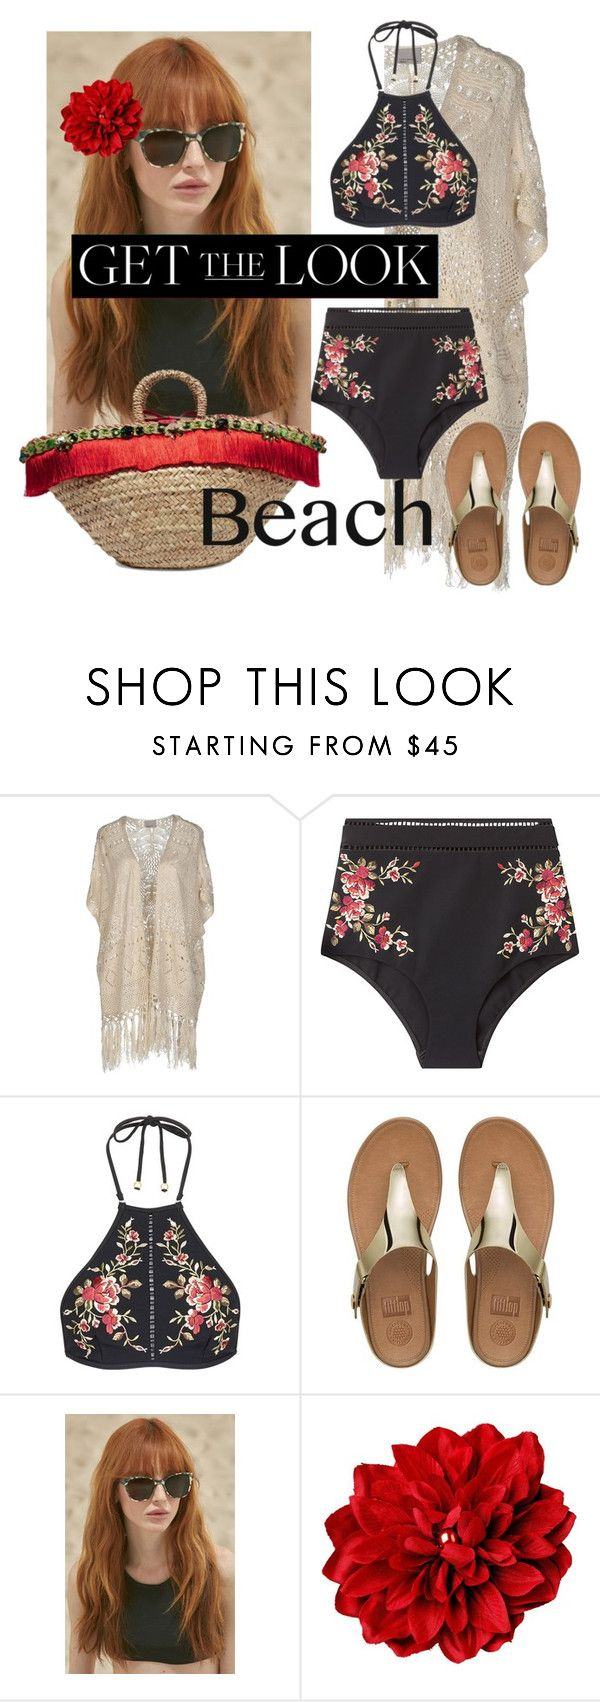 """""""#beach#"""" by libigonglica ❤ liked on Polyvore featuring Vero Moda, Zimmermann, FitFlop, Prism, Dolce&Gabbana, GetTheLook and Swimsuits"""